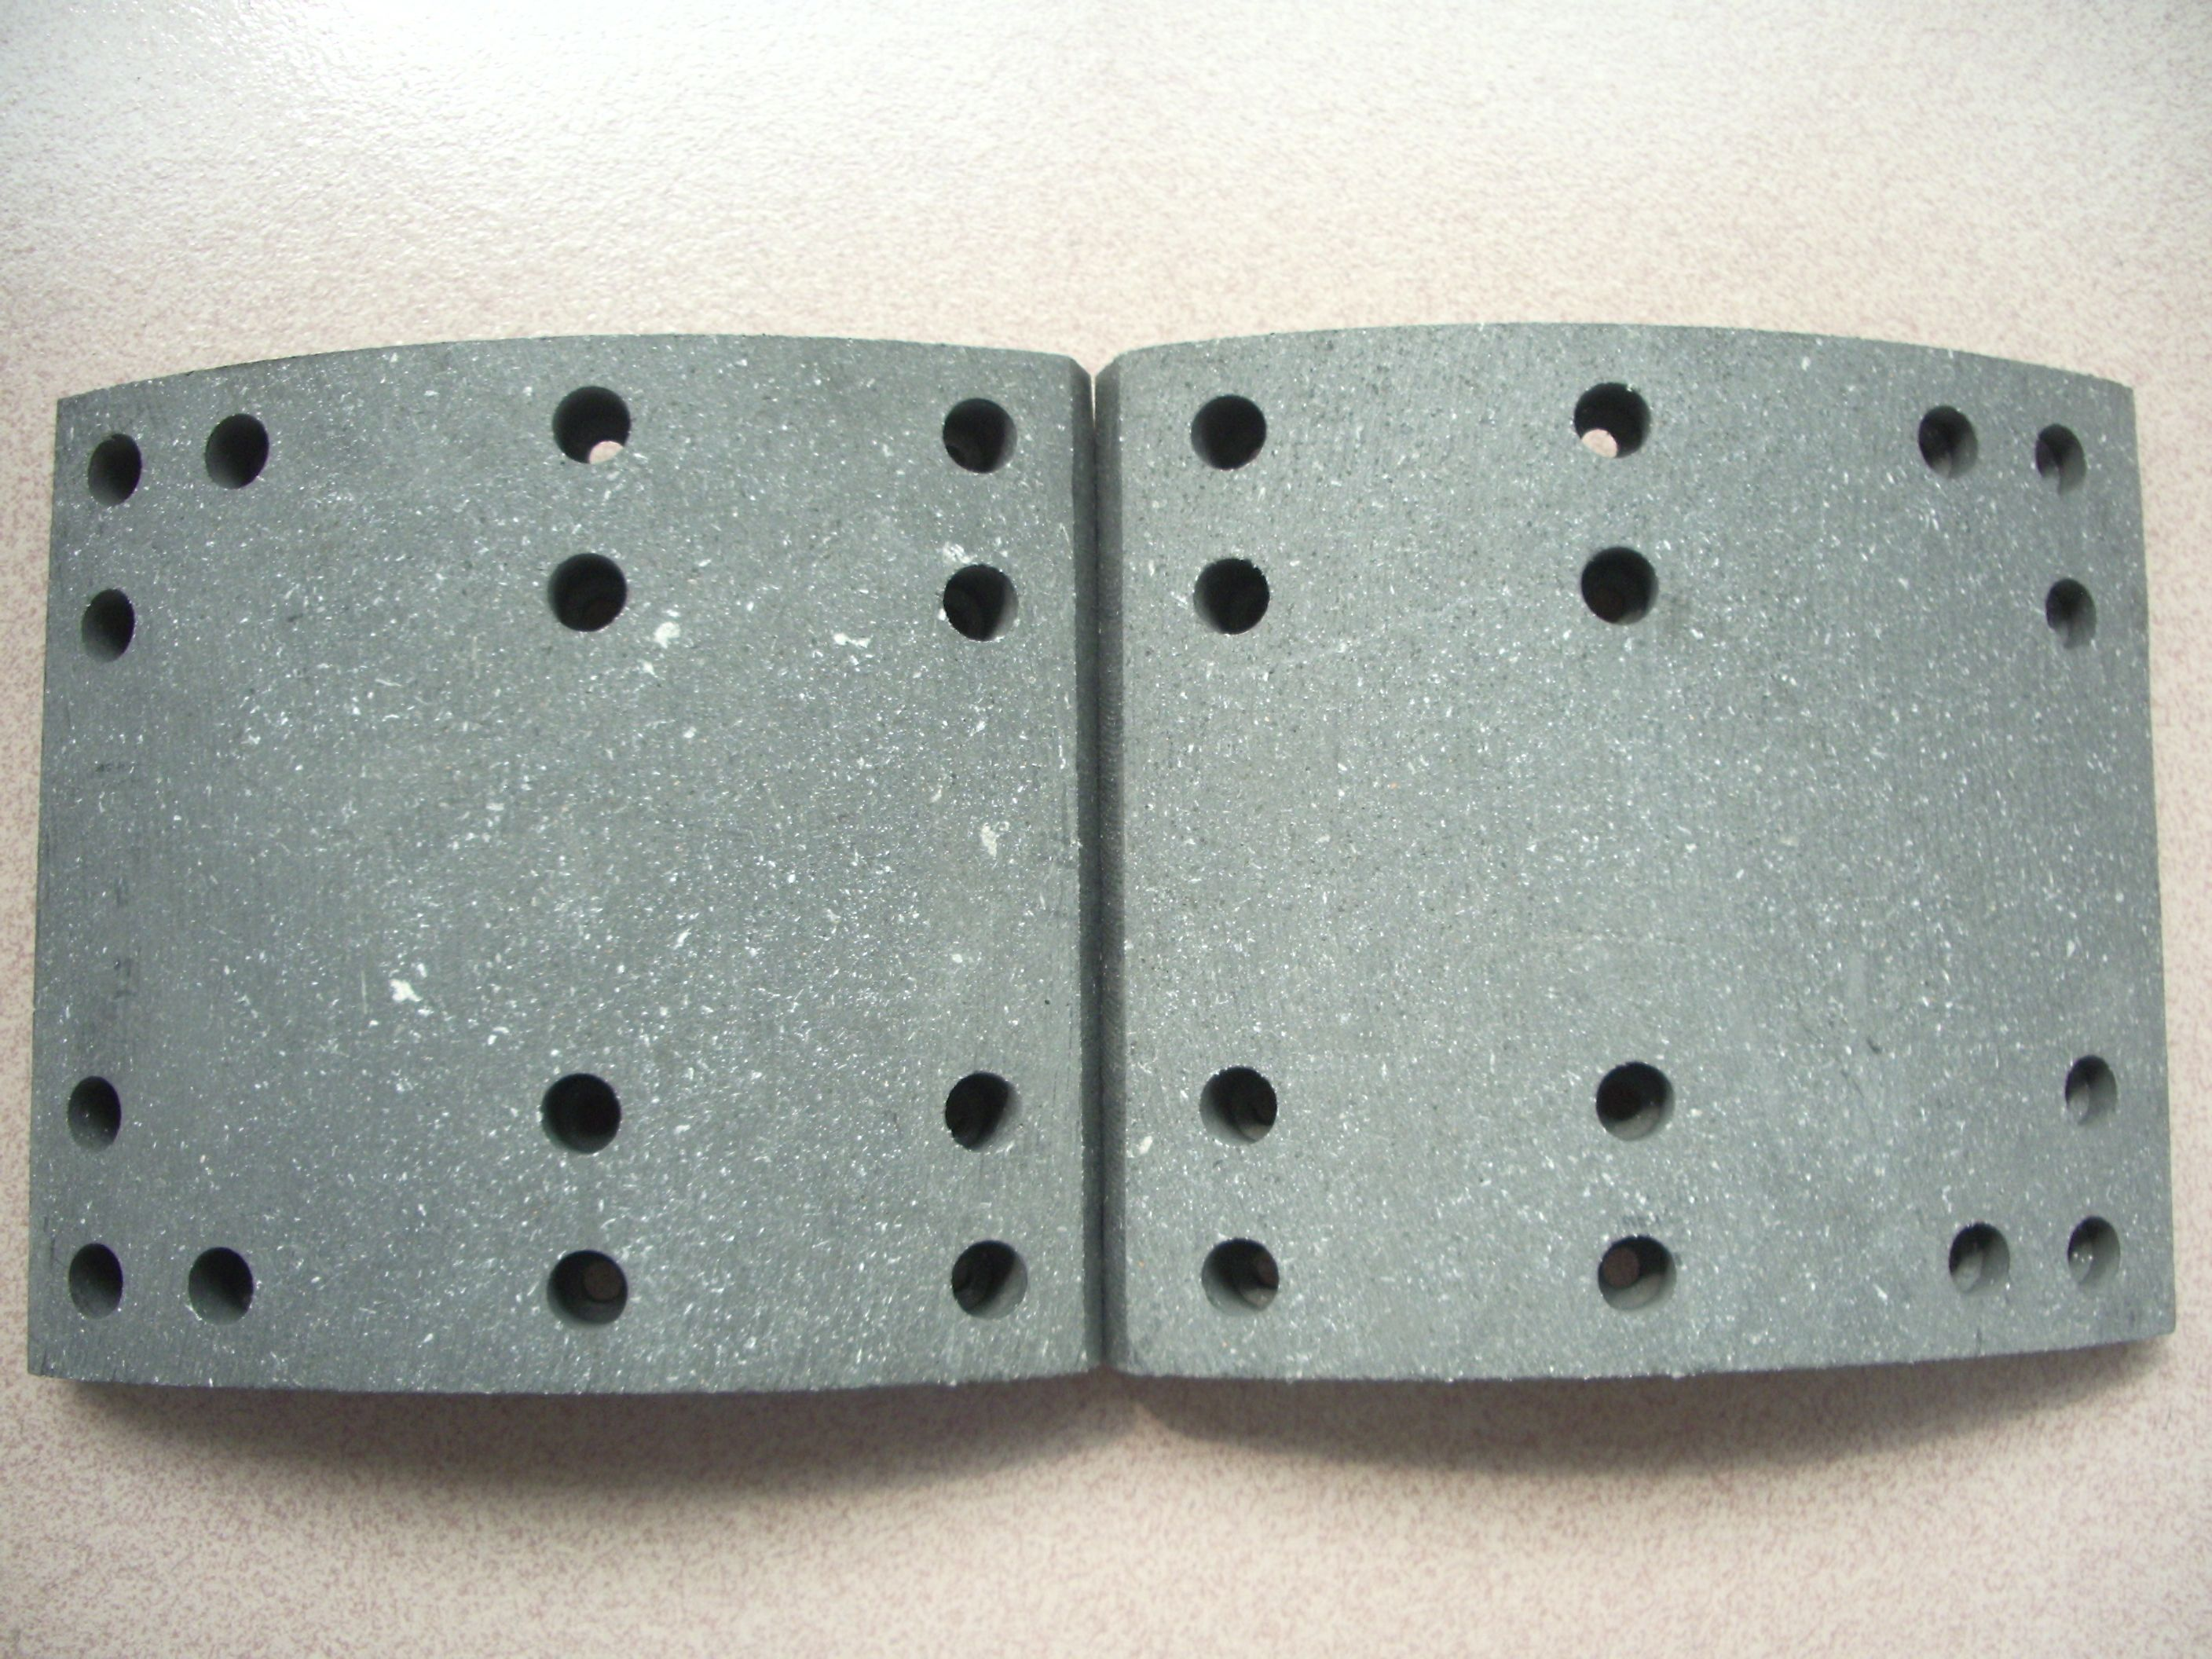 55++ How much asbestos is in brake pads